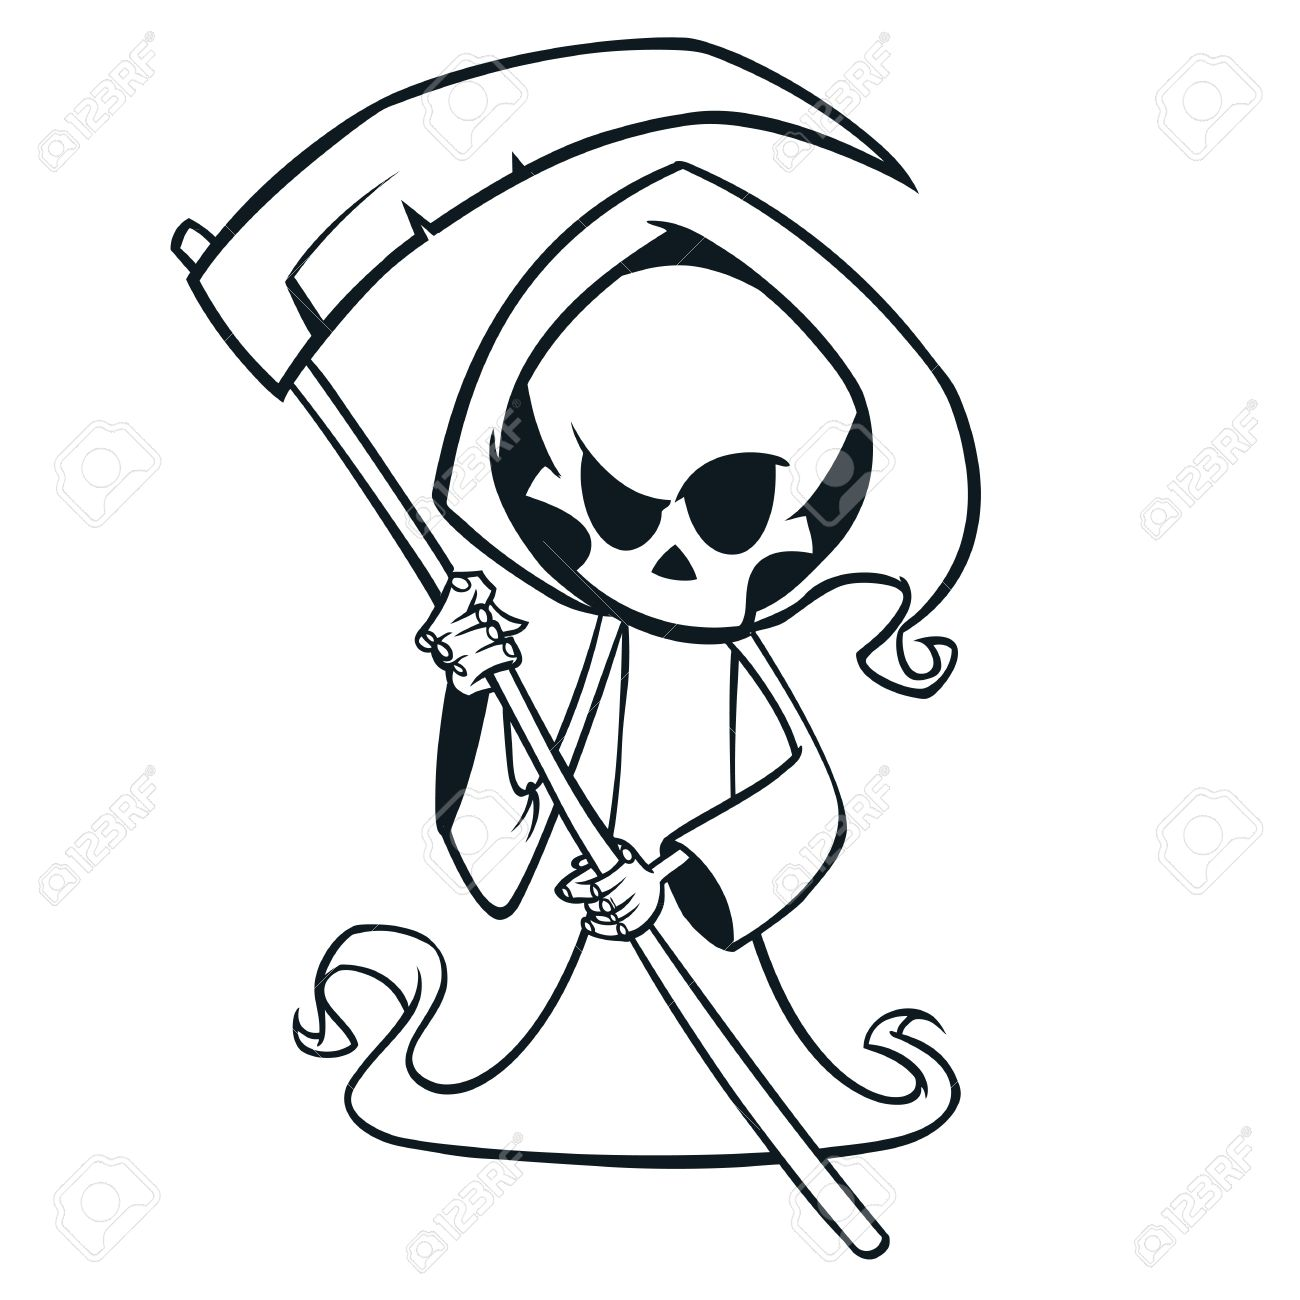 Cute Cartoon Grim Reaper With Scythe Isolated On White Cute Royalty Free Cliparts Vectors And Stock Illustration Image 85681064